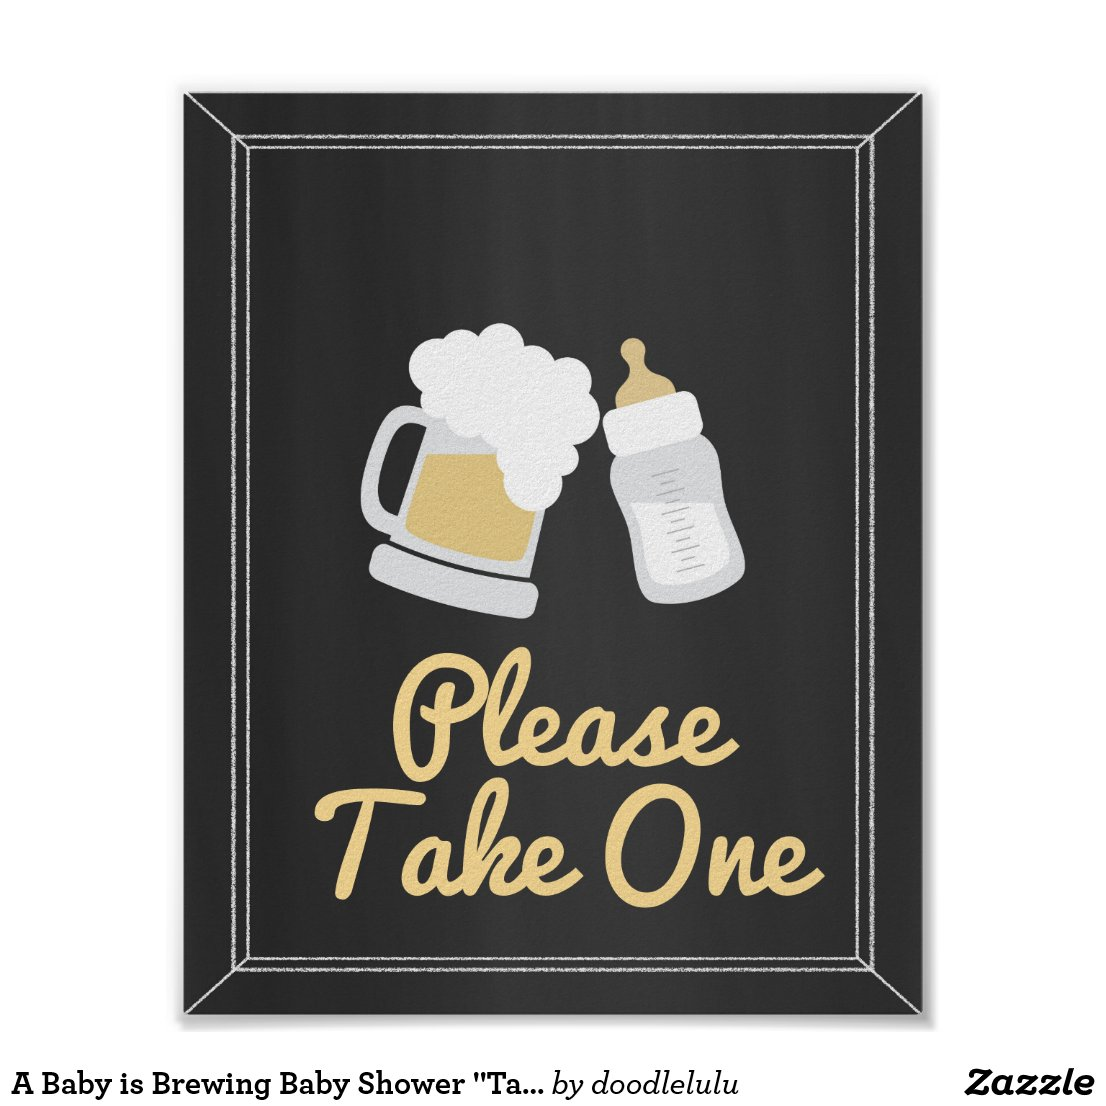 "A Baby is Brewing Baby Shower ""Take One"" Sign"